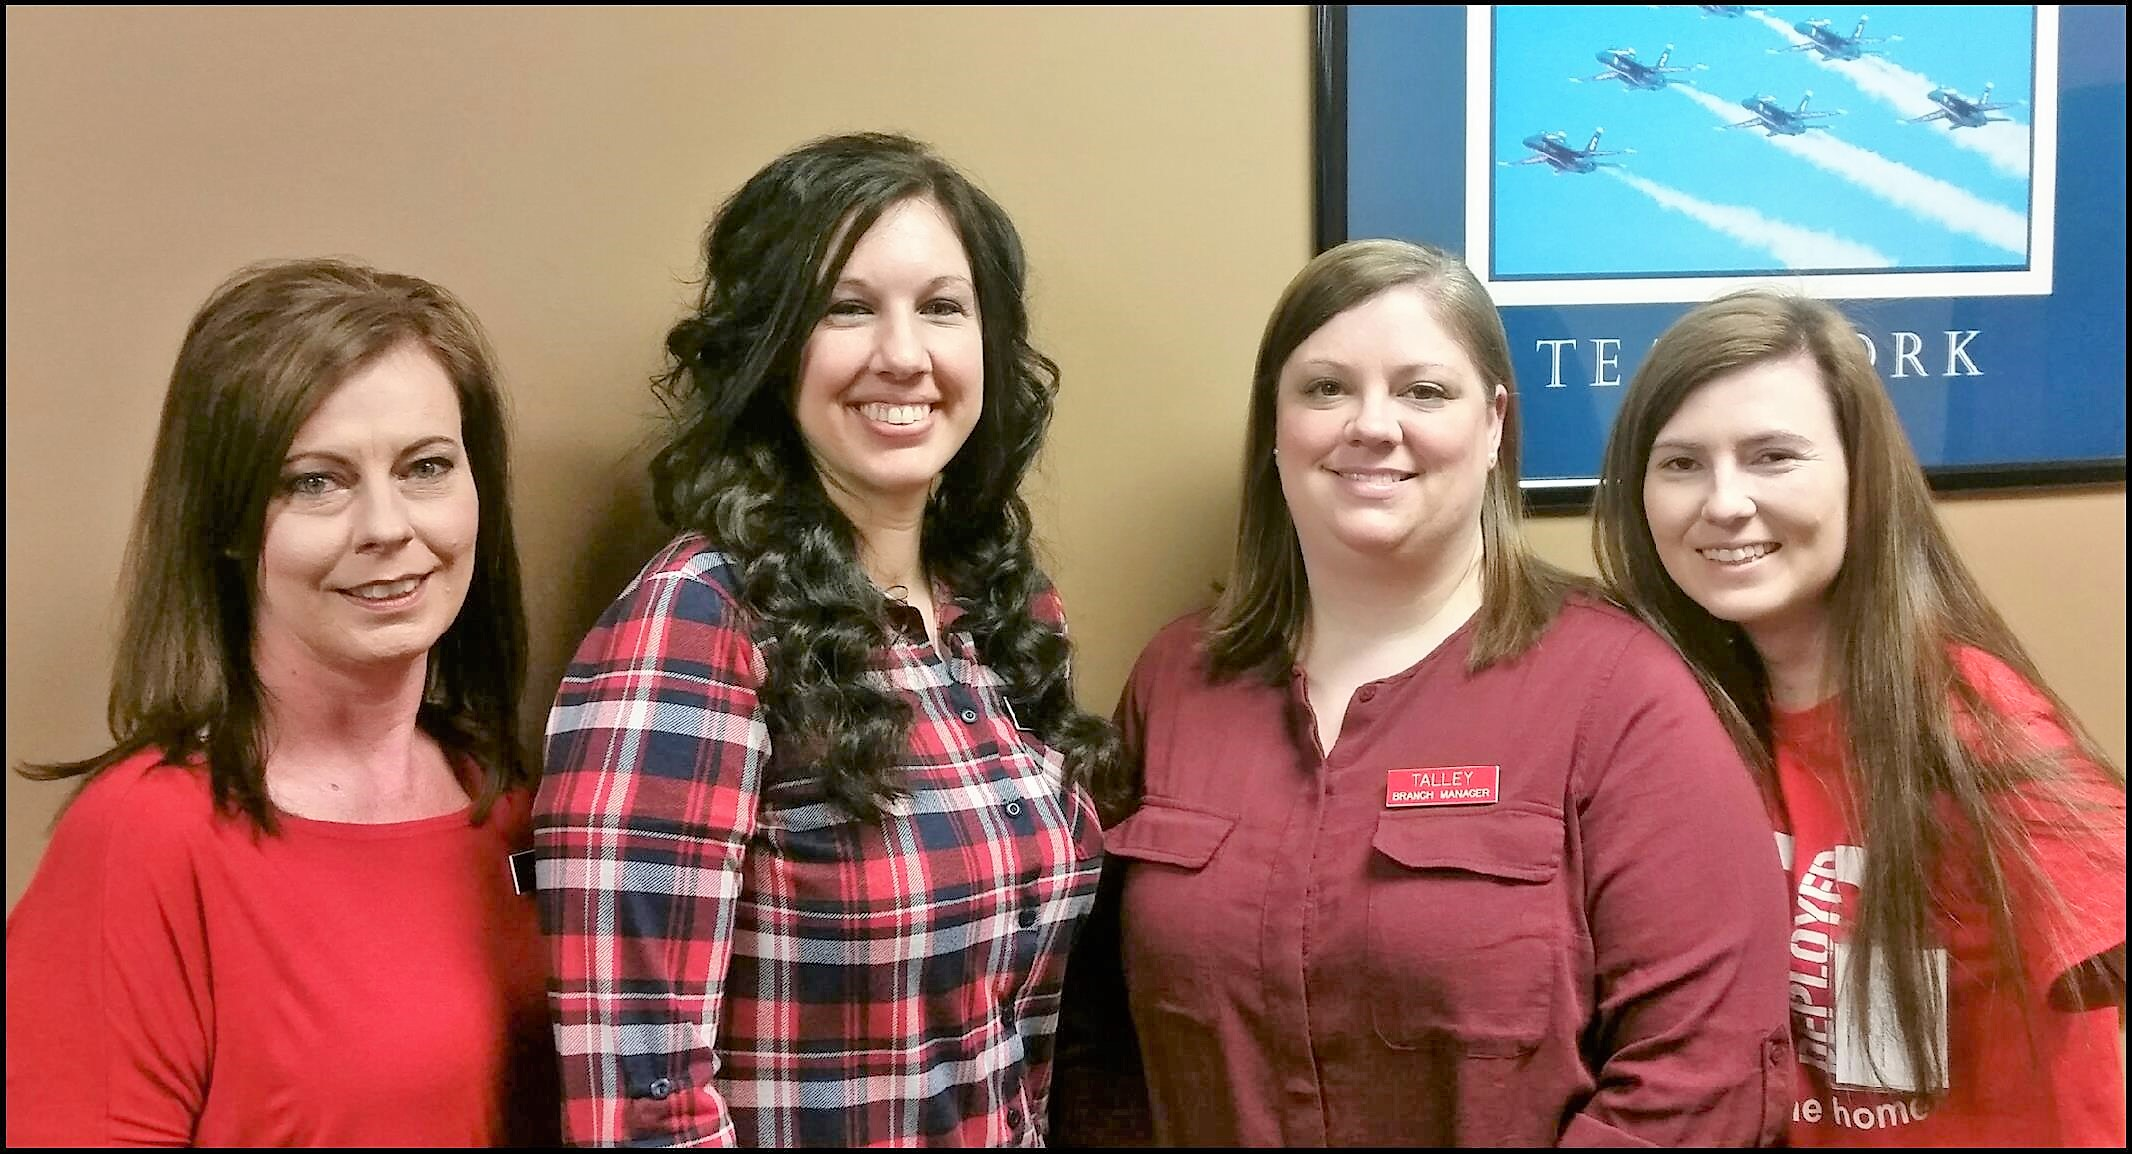 Employees wear red to raise awareness about heart disease prevention.